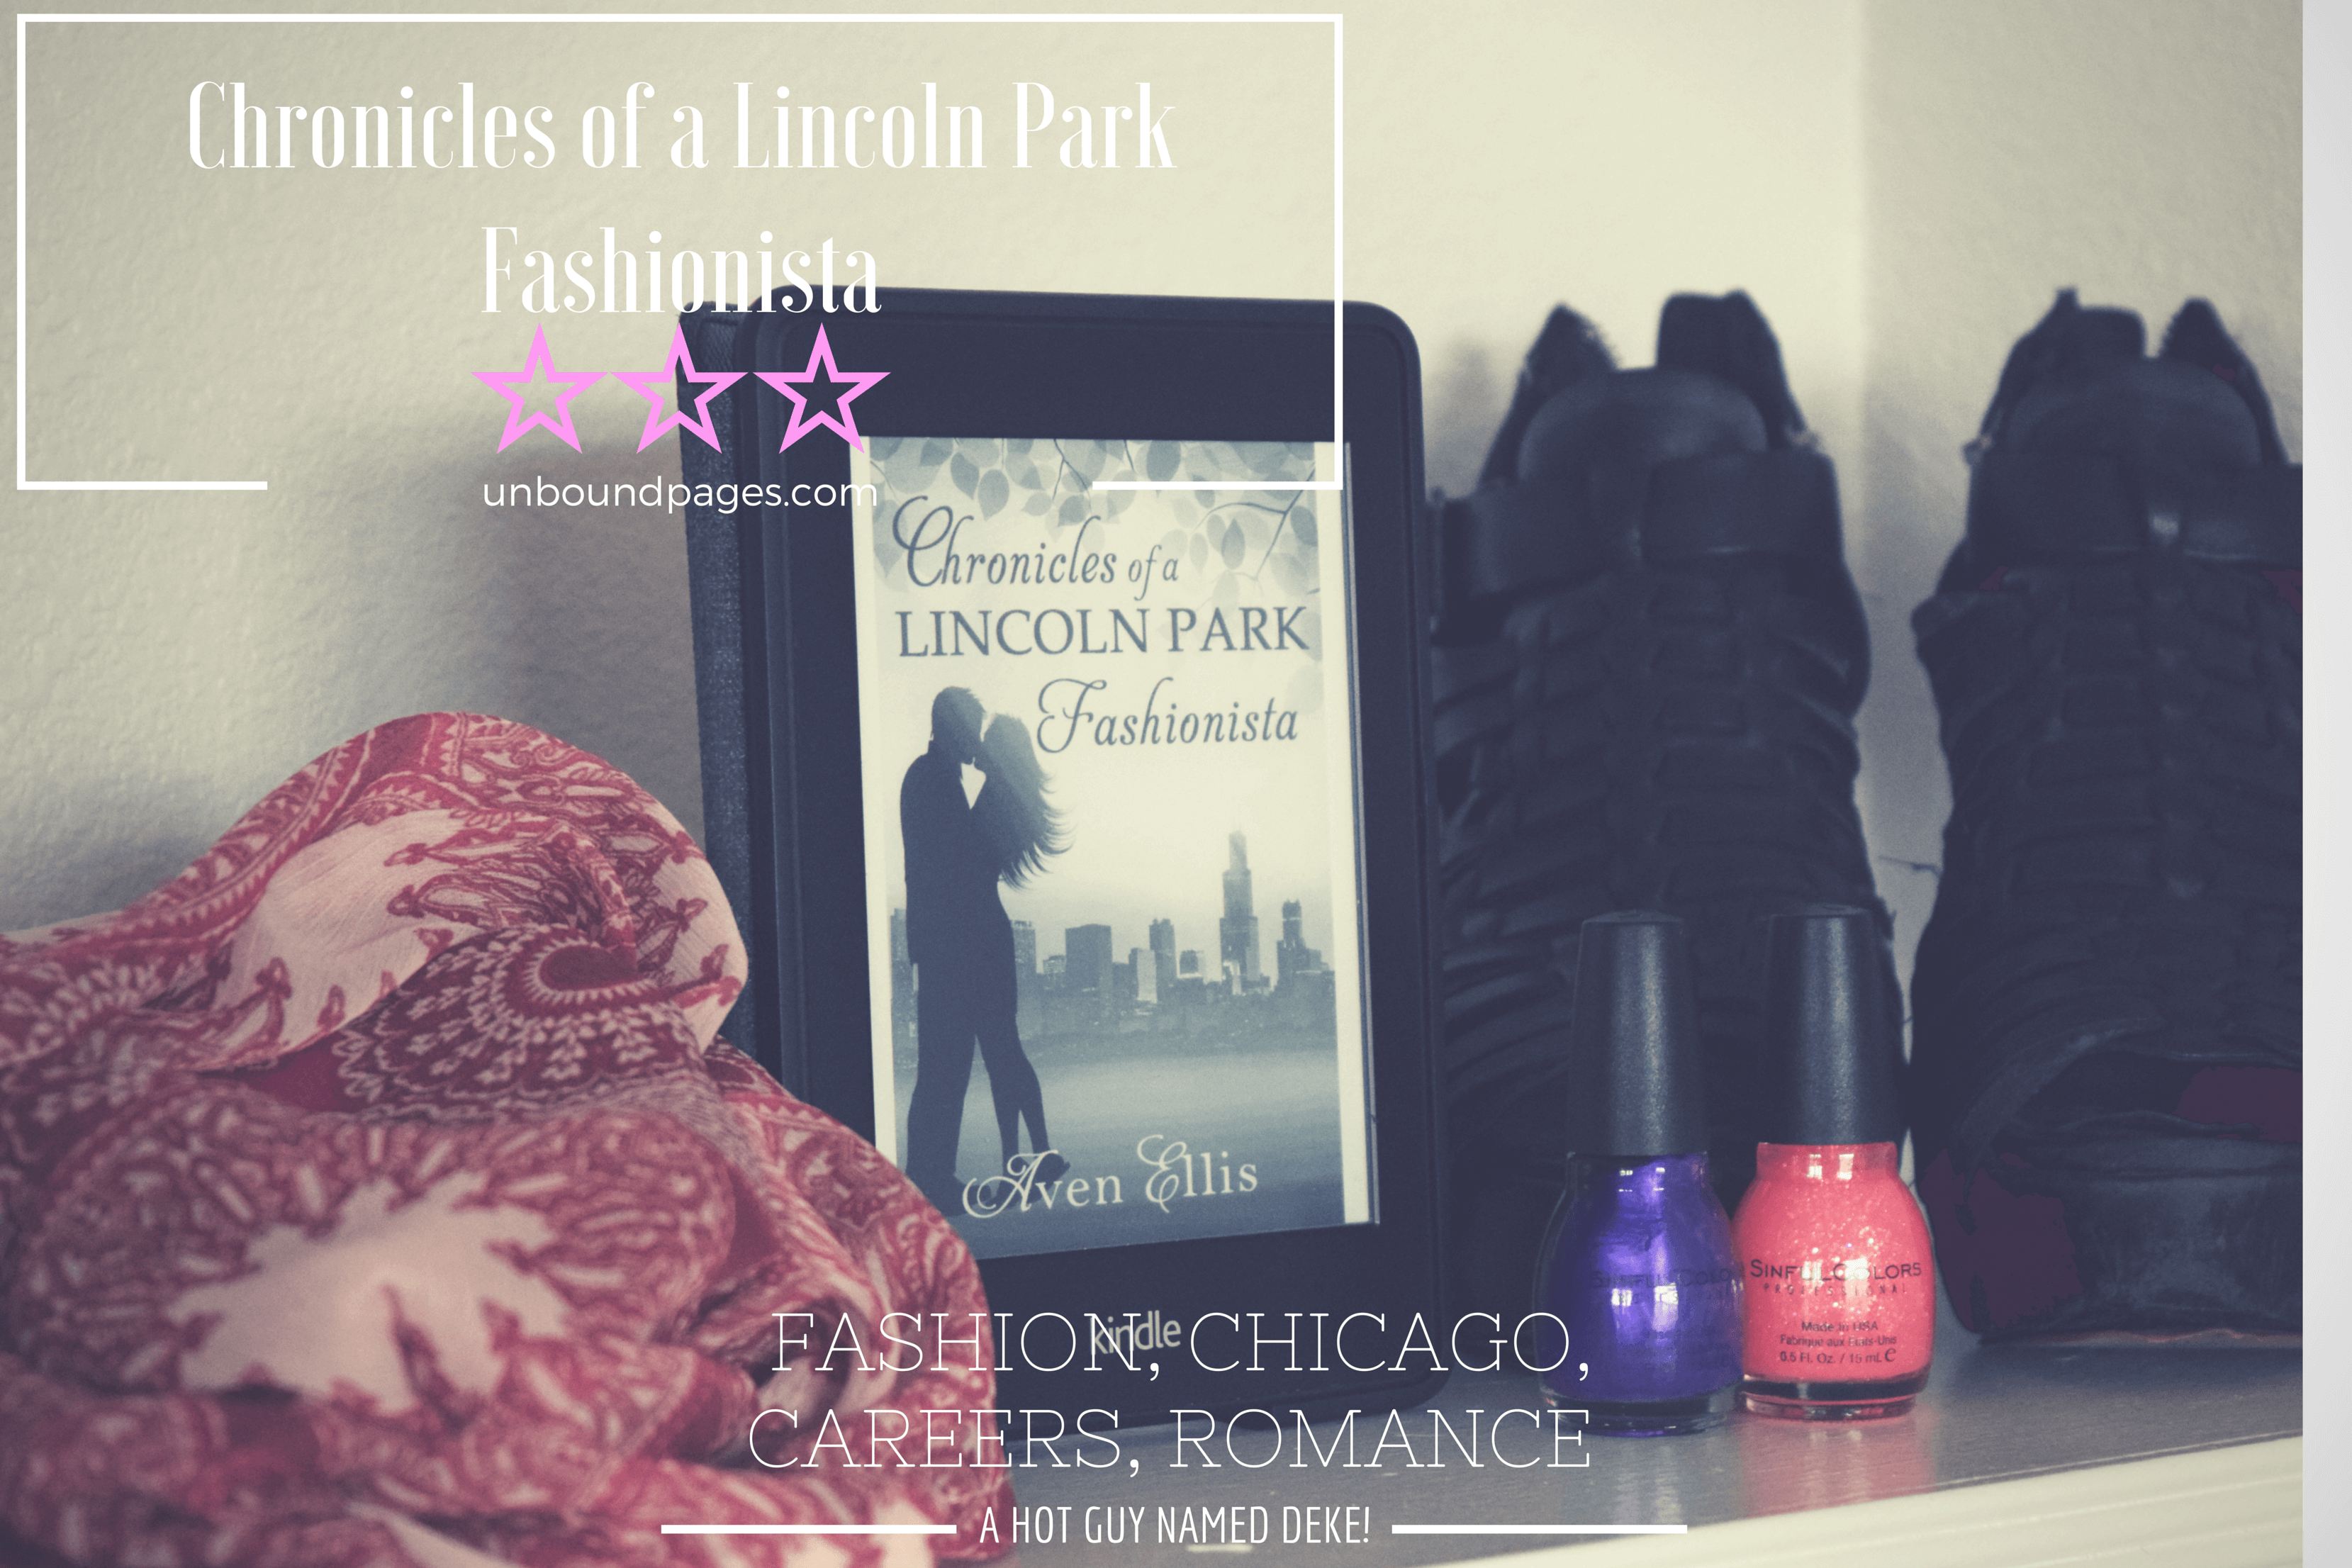 Chronicles of a Lincoln Park Fashionista was a great look at the beginning of someone's career. And there's a hot guy! - unboundpages.com